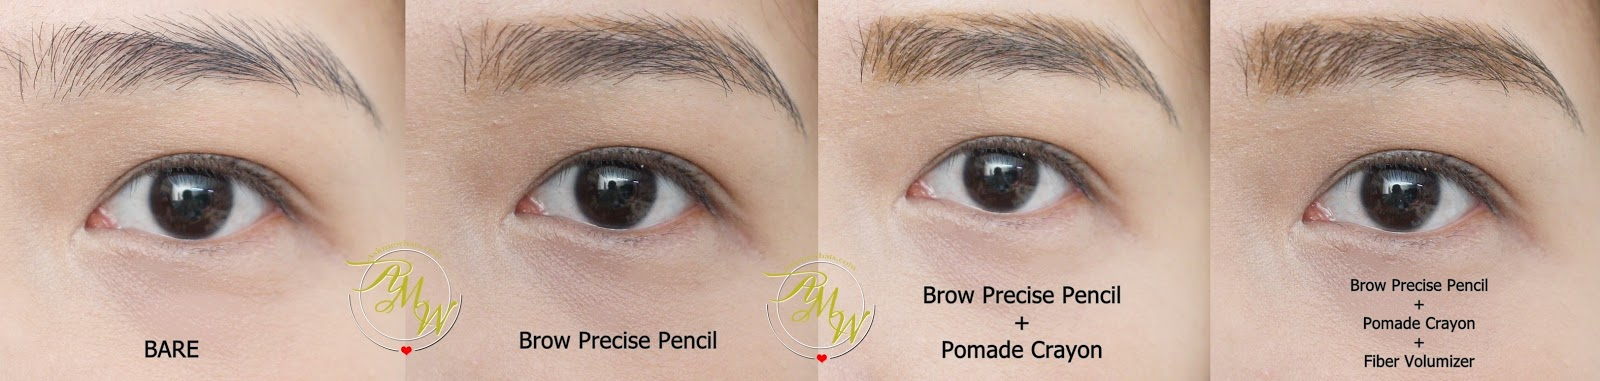 b947cc34664 before and after photo using Maybelline Fashion Brow Precise Shaping Pencil  Natural Brown Review, Maybelline